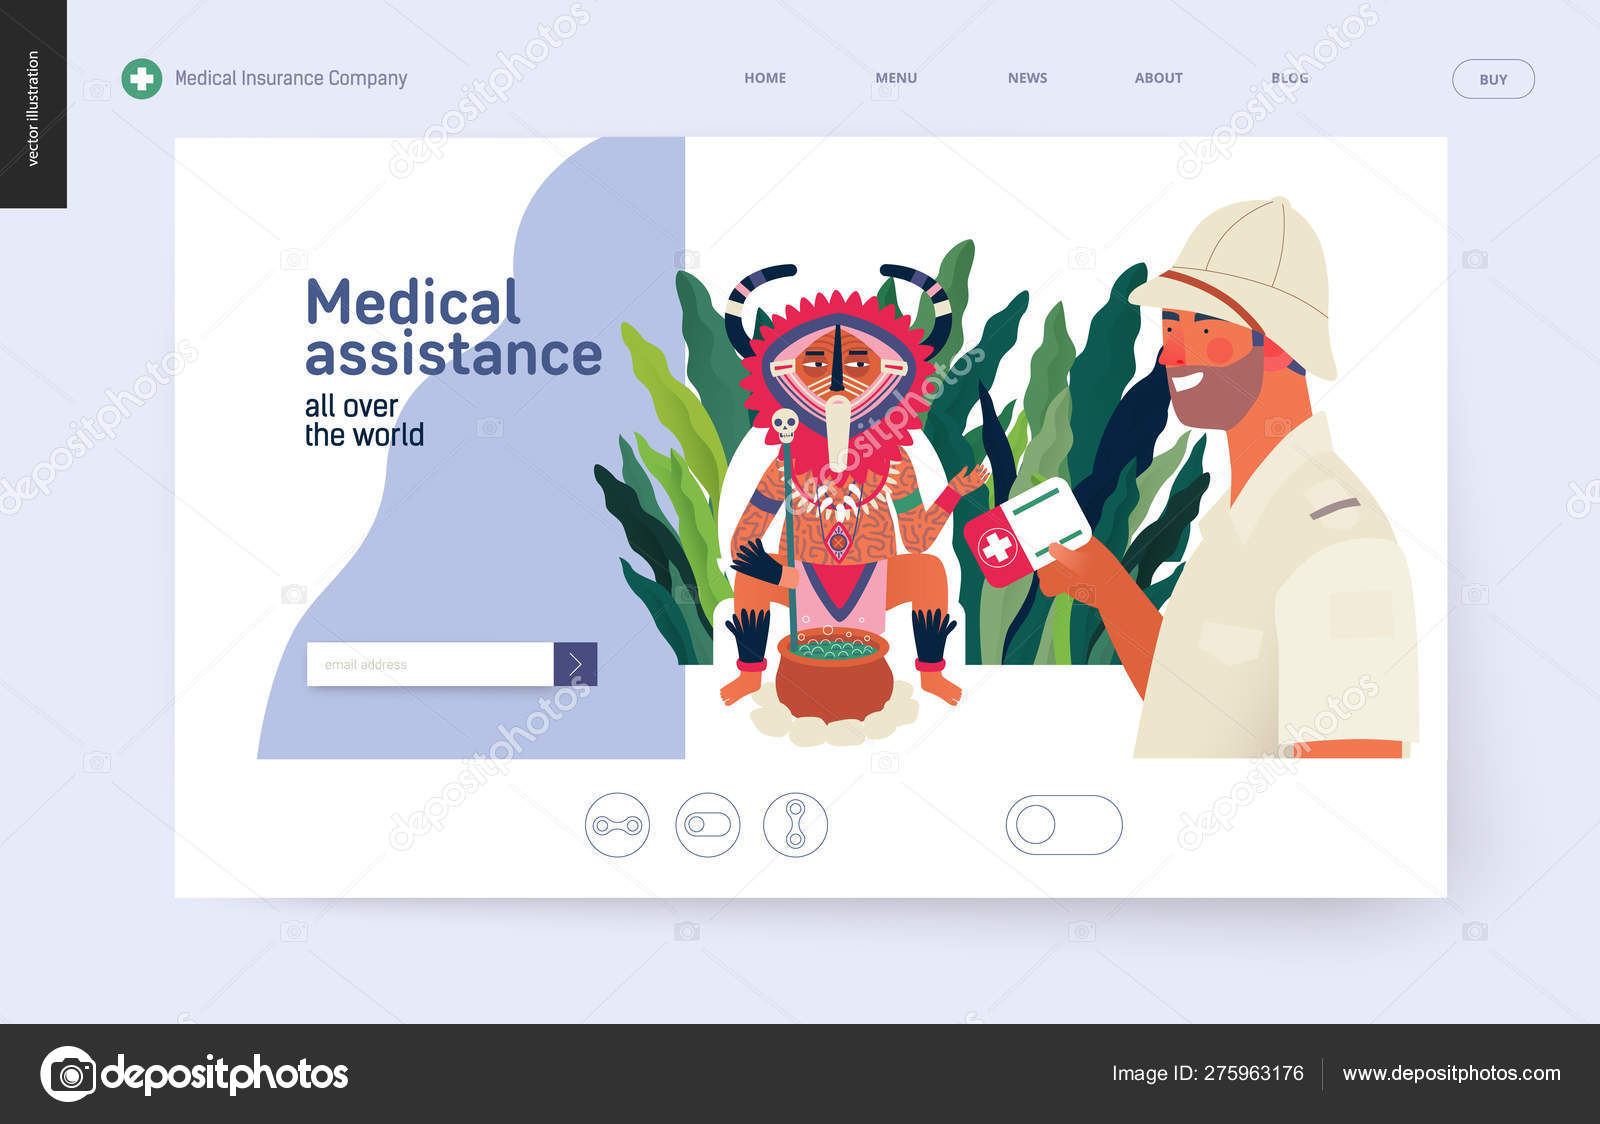 Medical insurance template - medical assistance all over the